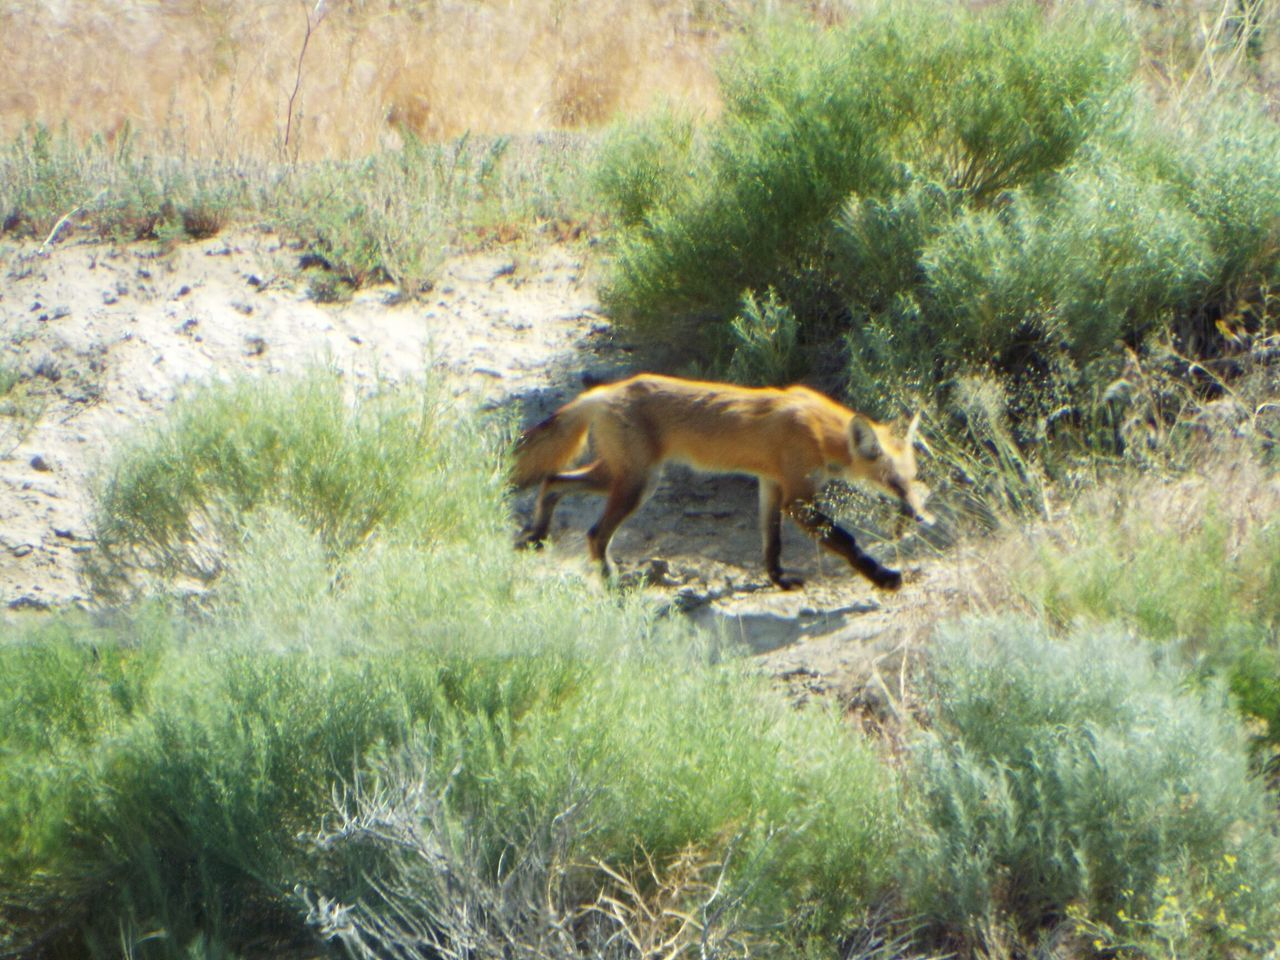 Hungry Fox Little America Wyoming Wildlife Photography Feel The Journey Travelphotography Animals In The Wild Outdoor Photography Nature Photography Wild Animals Wyoming Adventure Outdoors❤ Wildlife & Nature Wyomingwildlife Fox Eating Fox Tail Fox🐺 Nature Foxtail